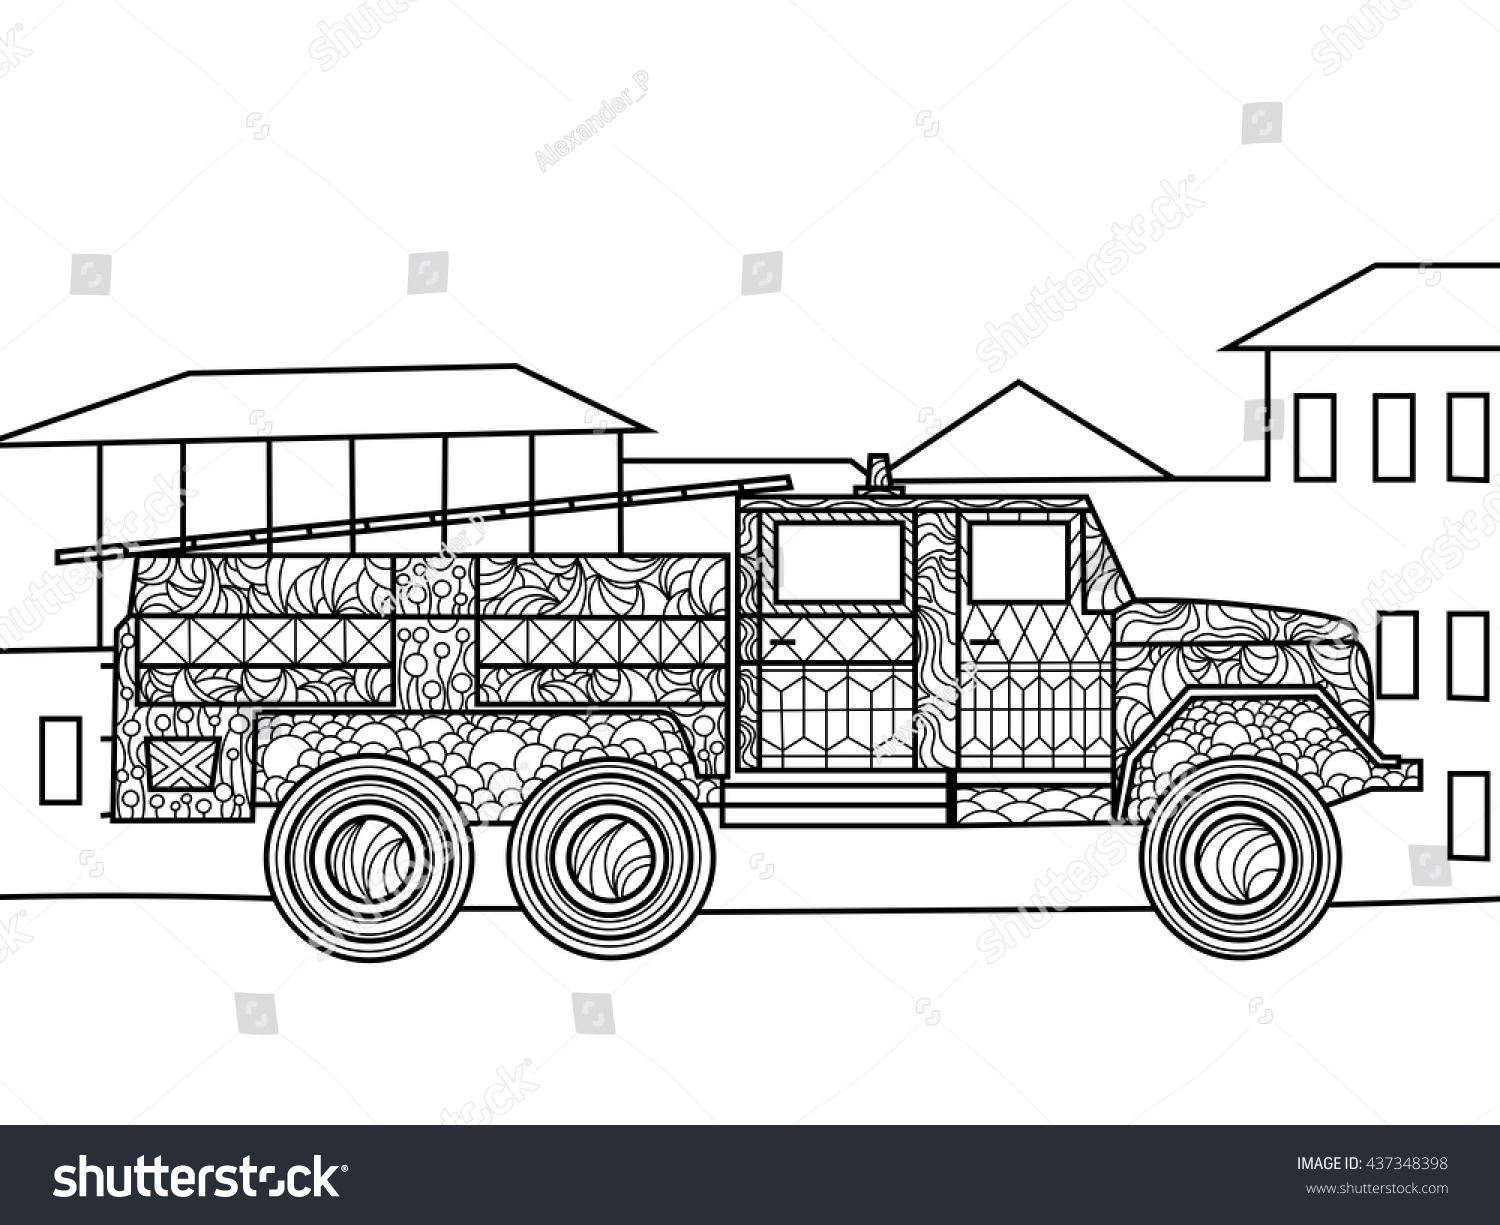 Garbage truck coloring book - Grimy Garbage Truck Coloring Page Garbage Trucks Free